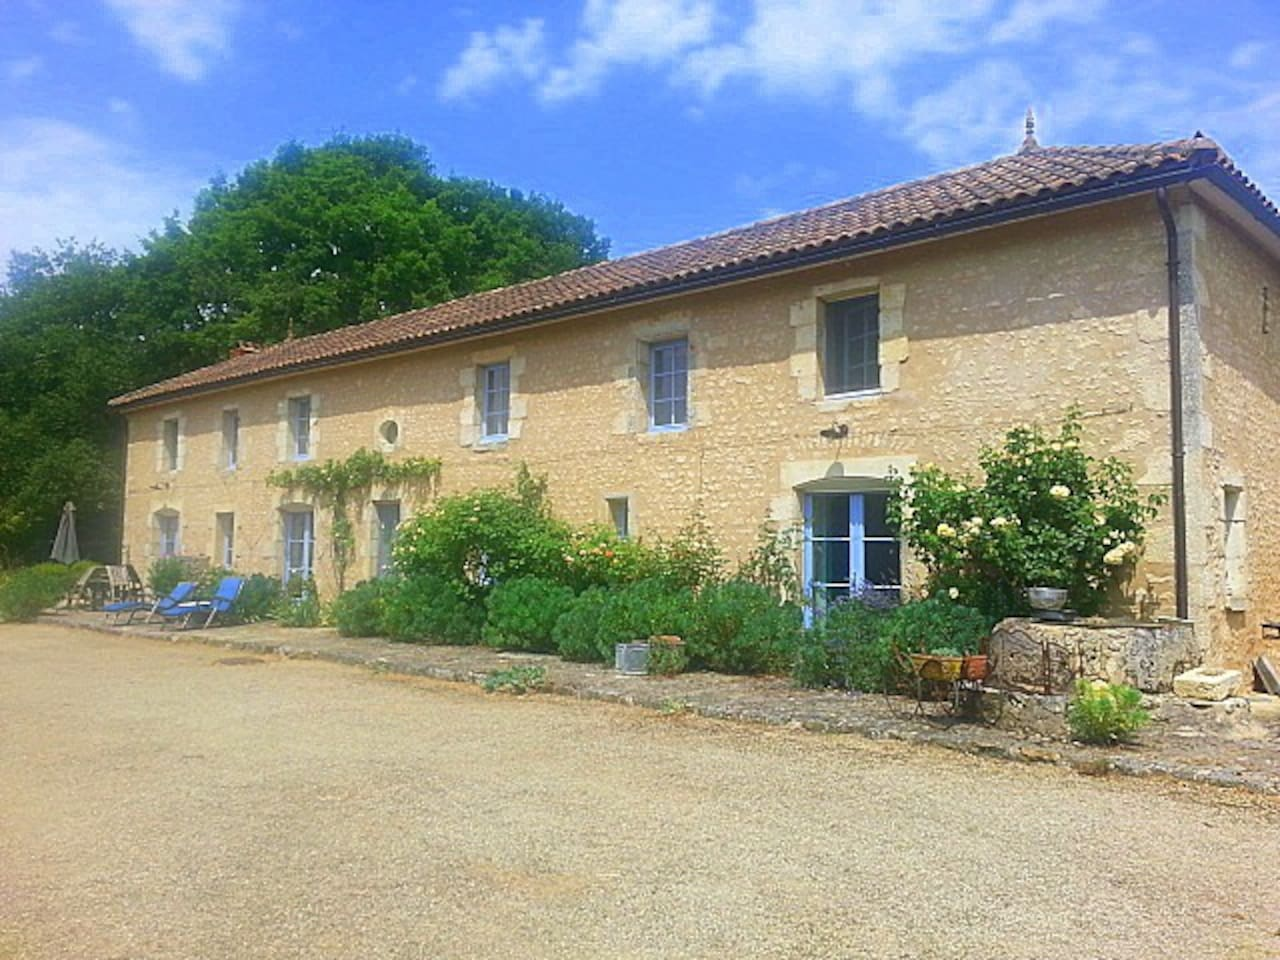 A restored farmhouse set in 5 hectares of tranquillity